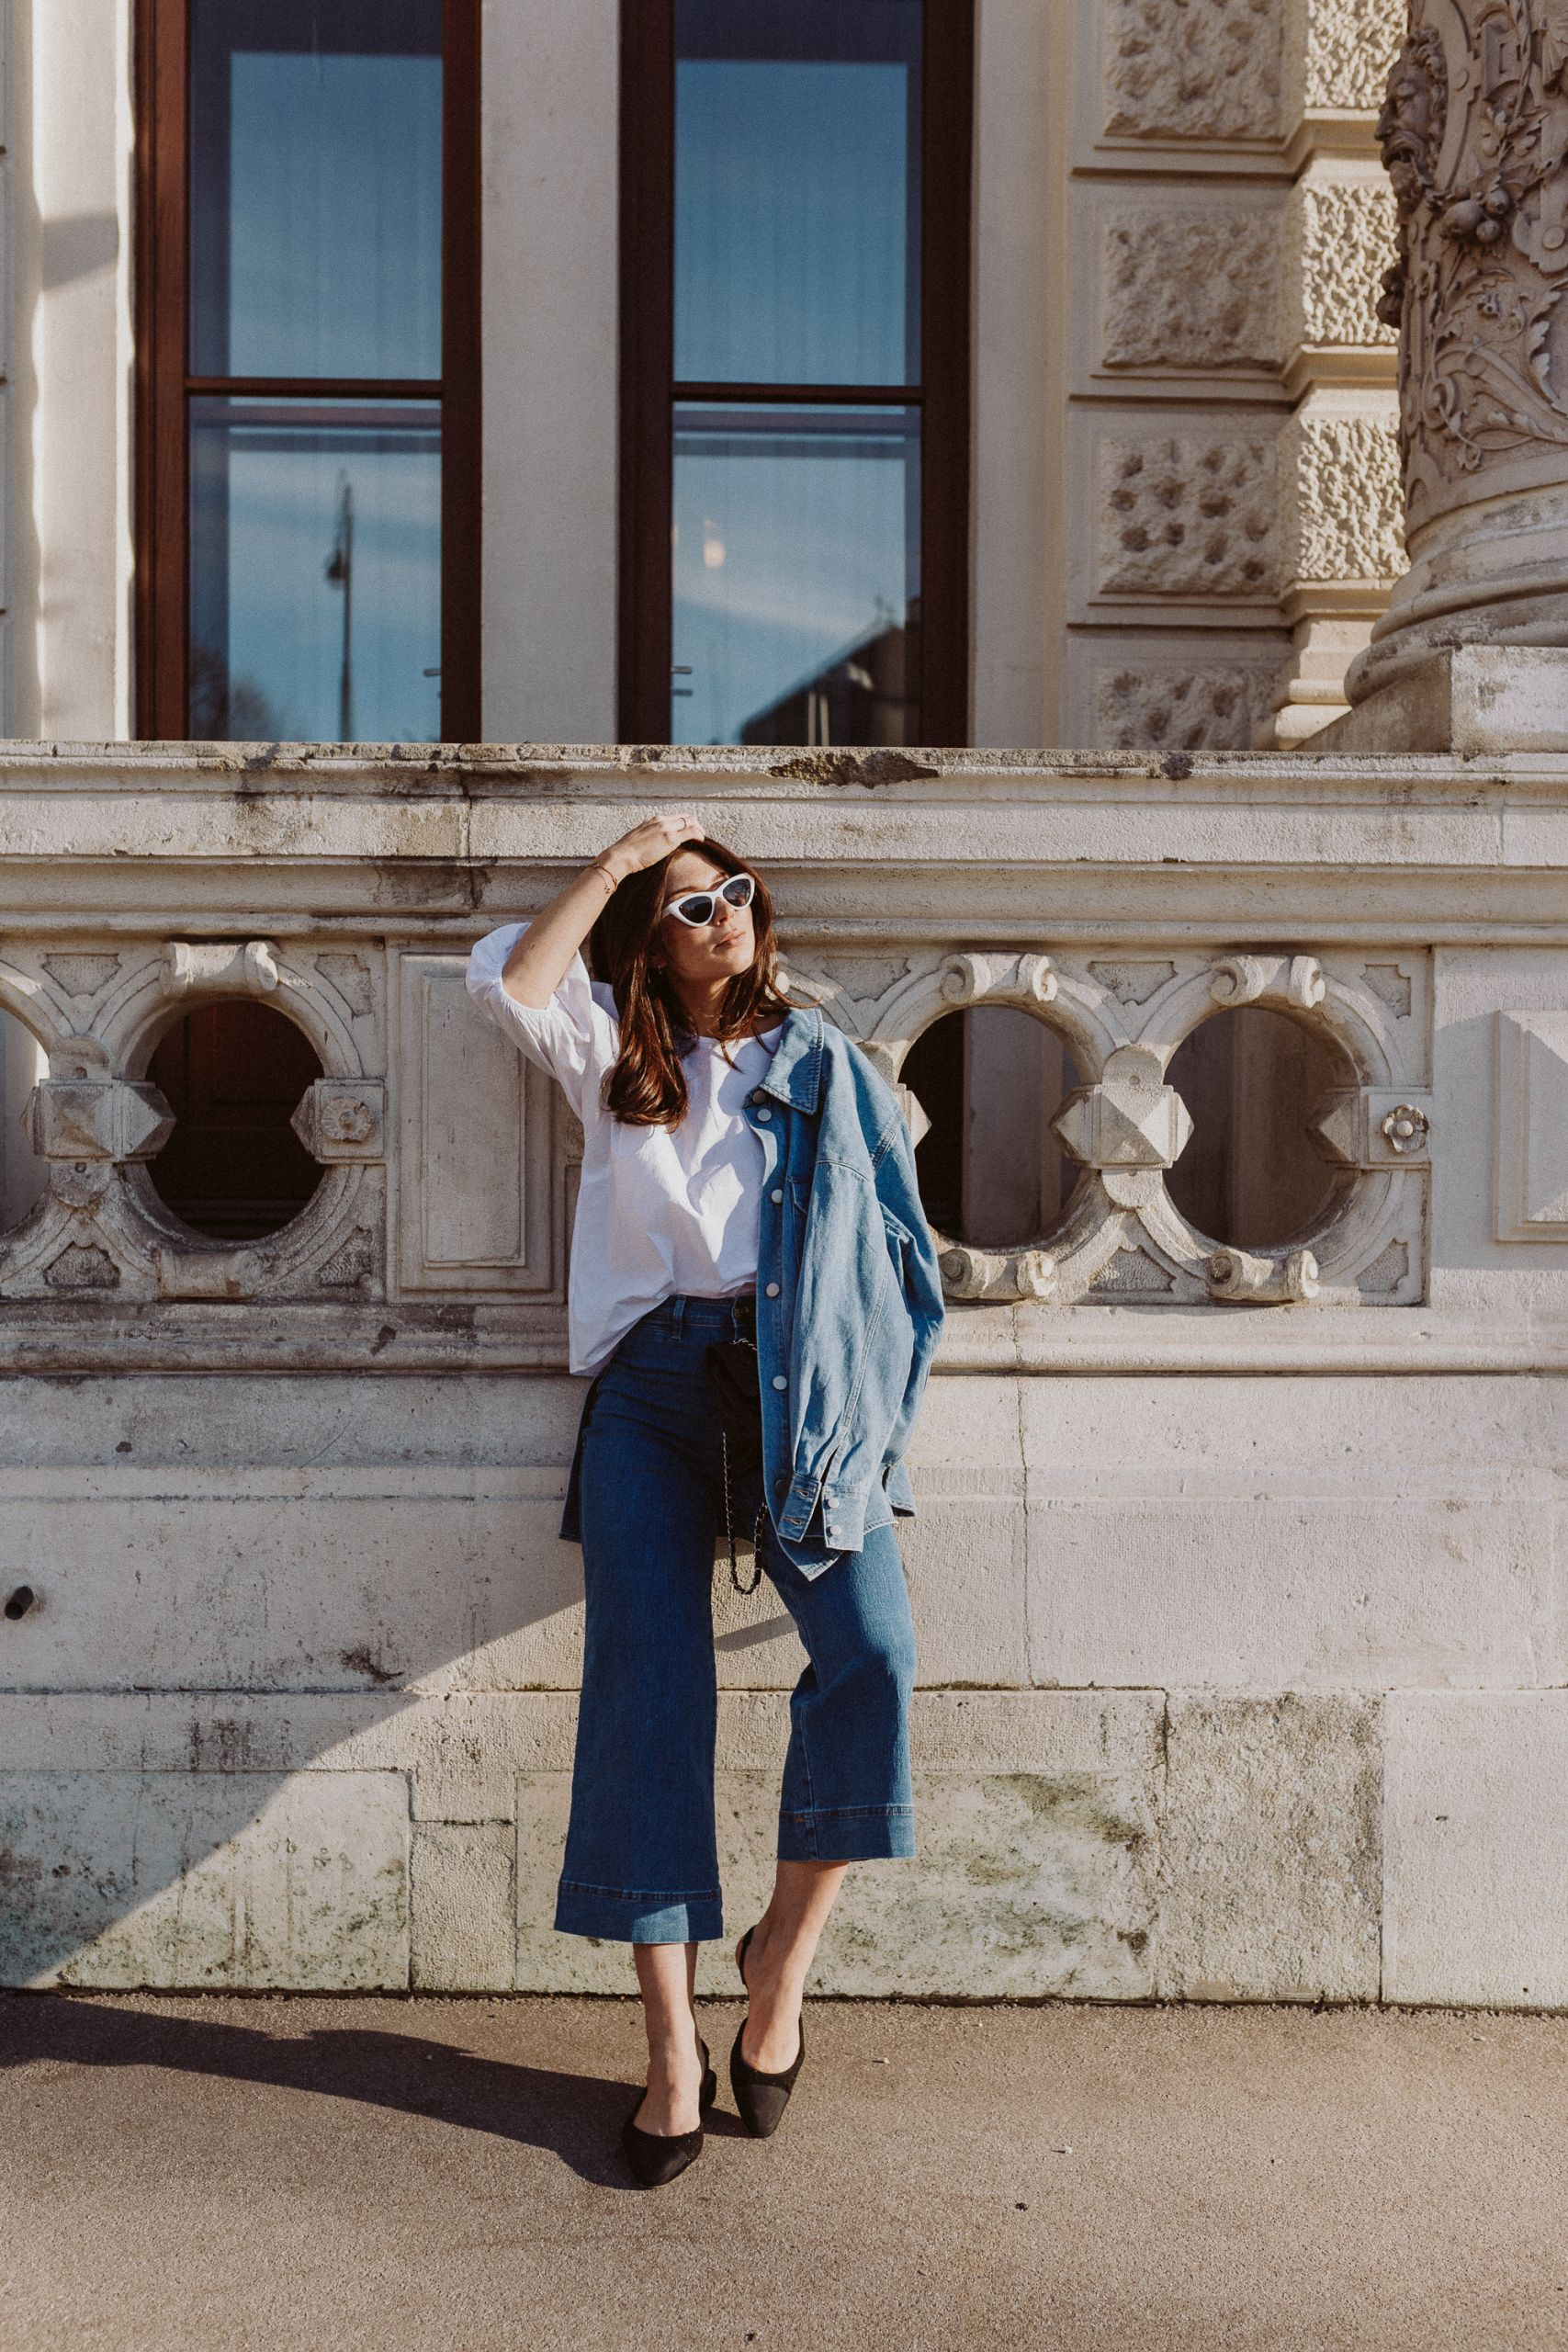 H&M x The Daily Dose Spring Looks: Denim Style - Love Daily Dose